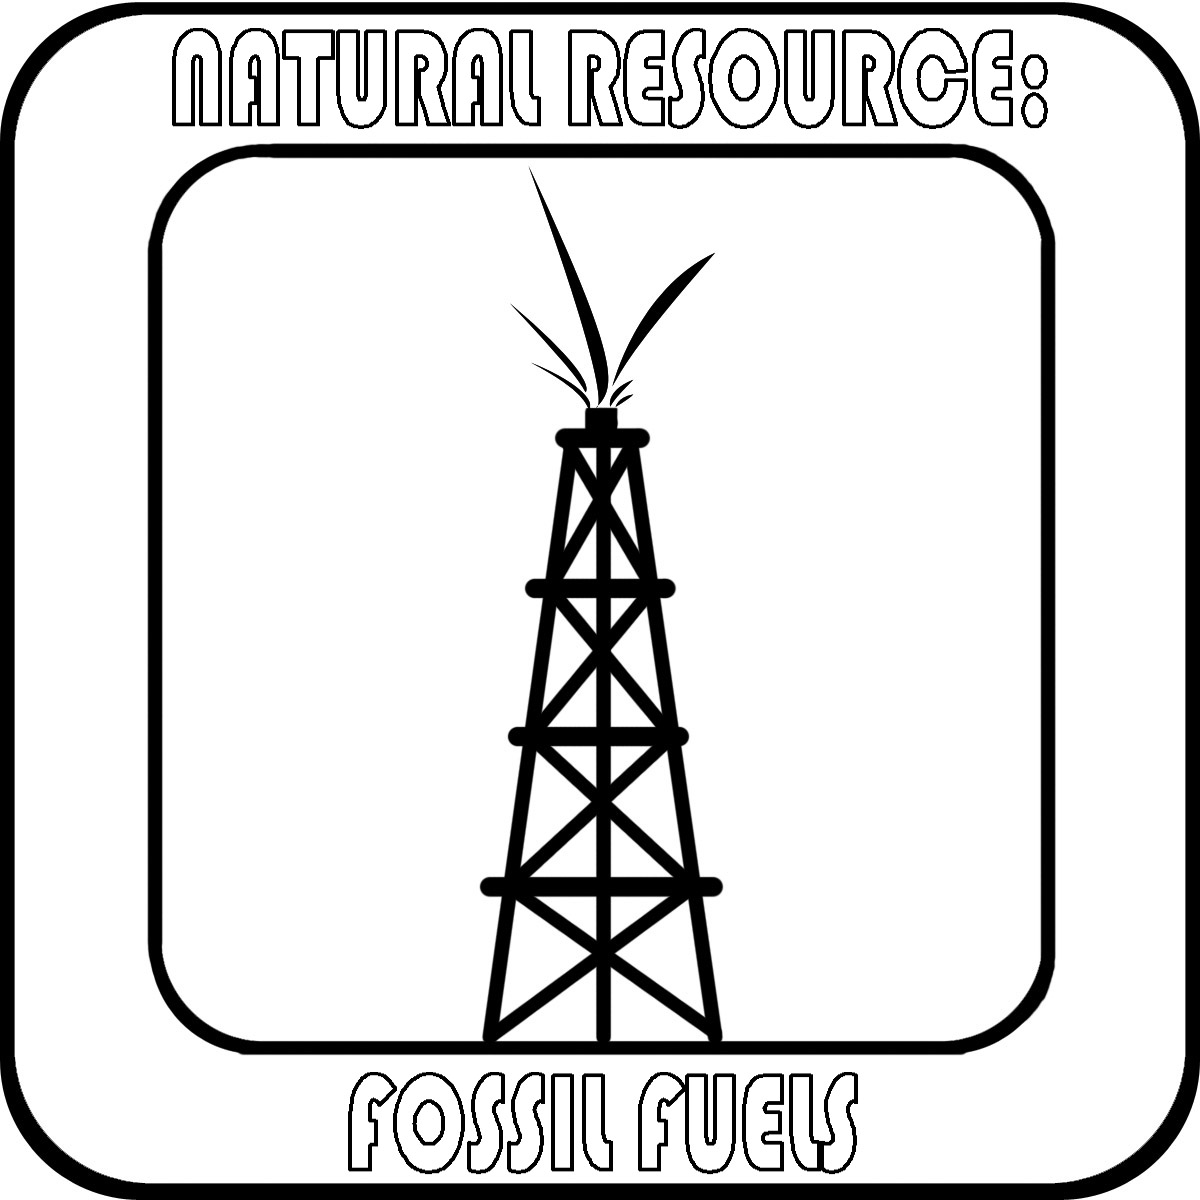 fossilfuels_labeled_bw